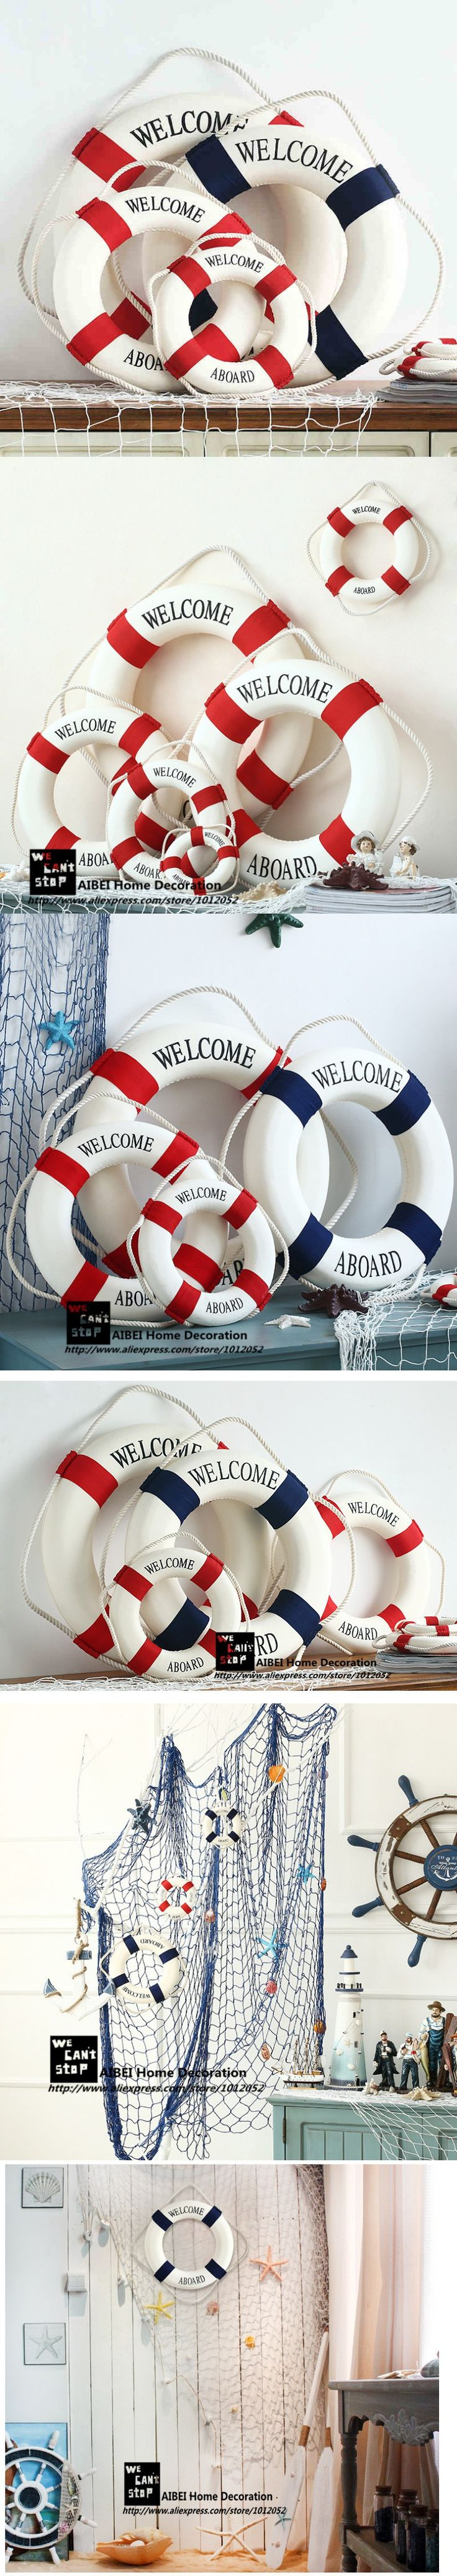 "AIBEI-Mediterranean Style ""welcome aboard"" Cotton Lifebuoy 1PC Bar Living Room Nautical Home Decoration Wall Hanger 3D Sticker  $2.99"